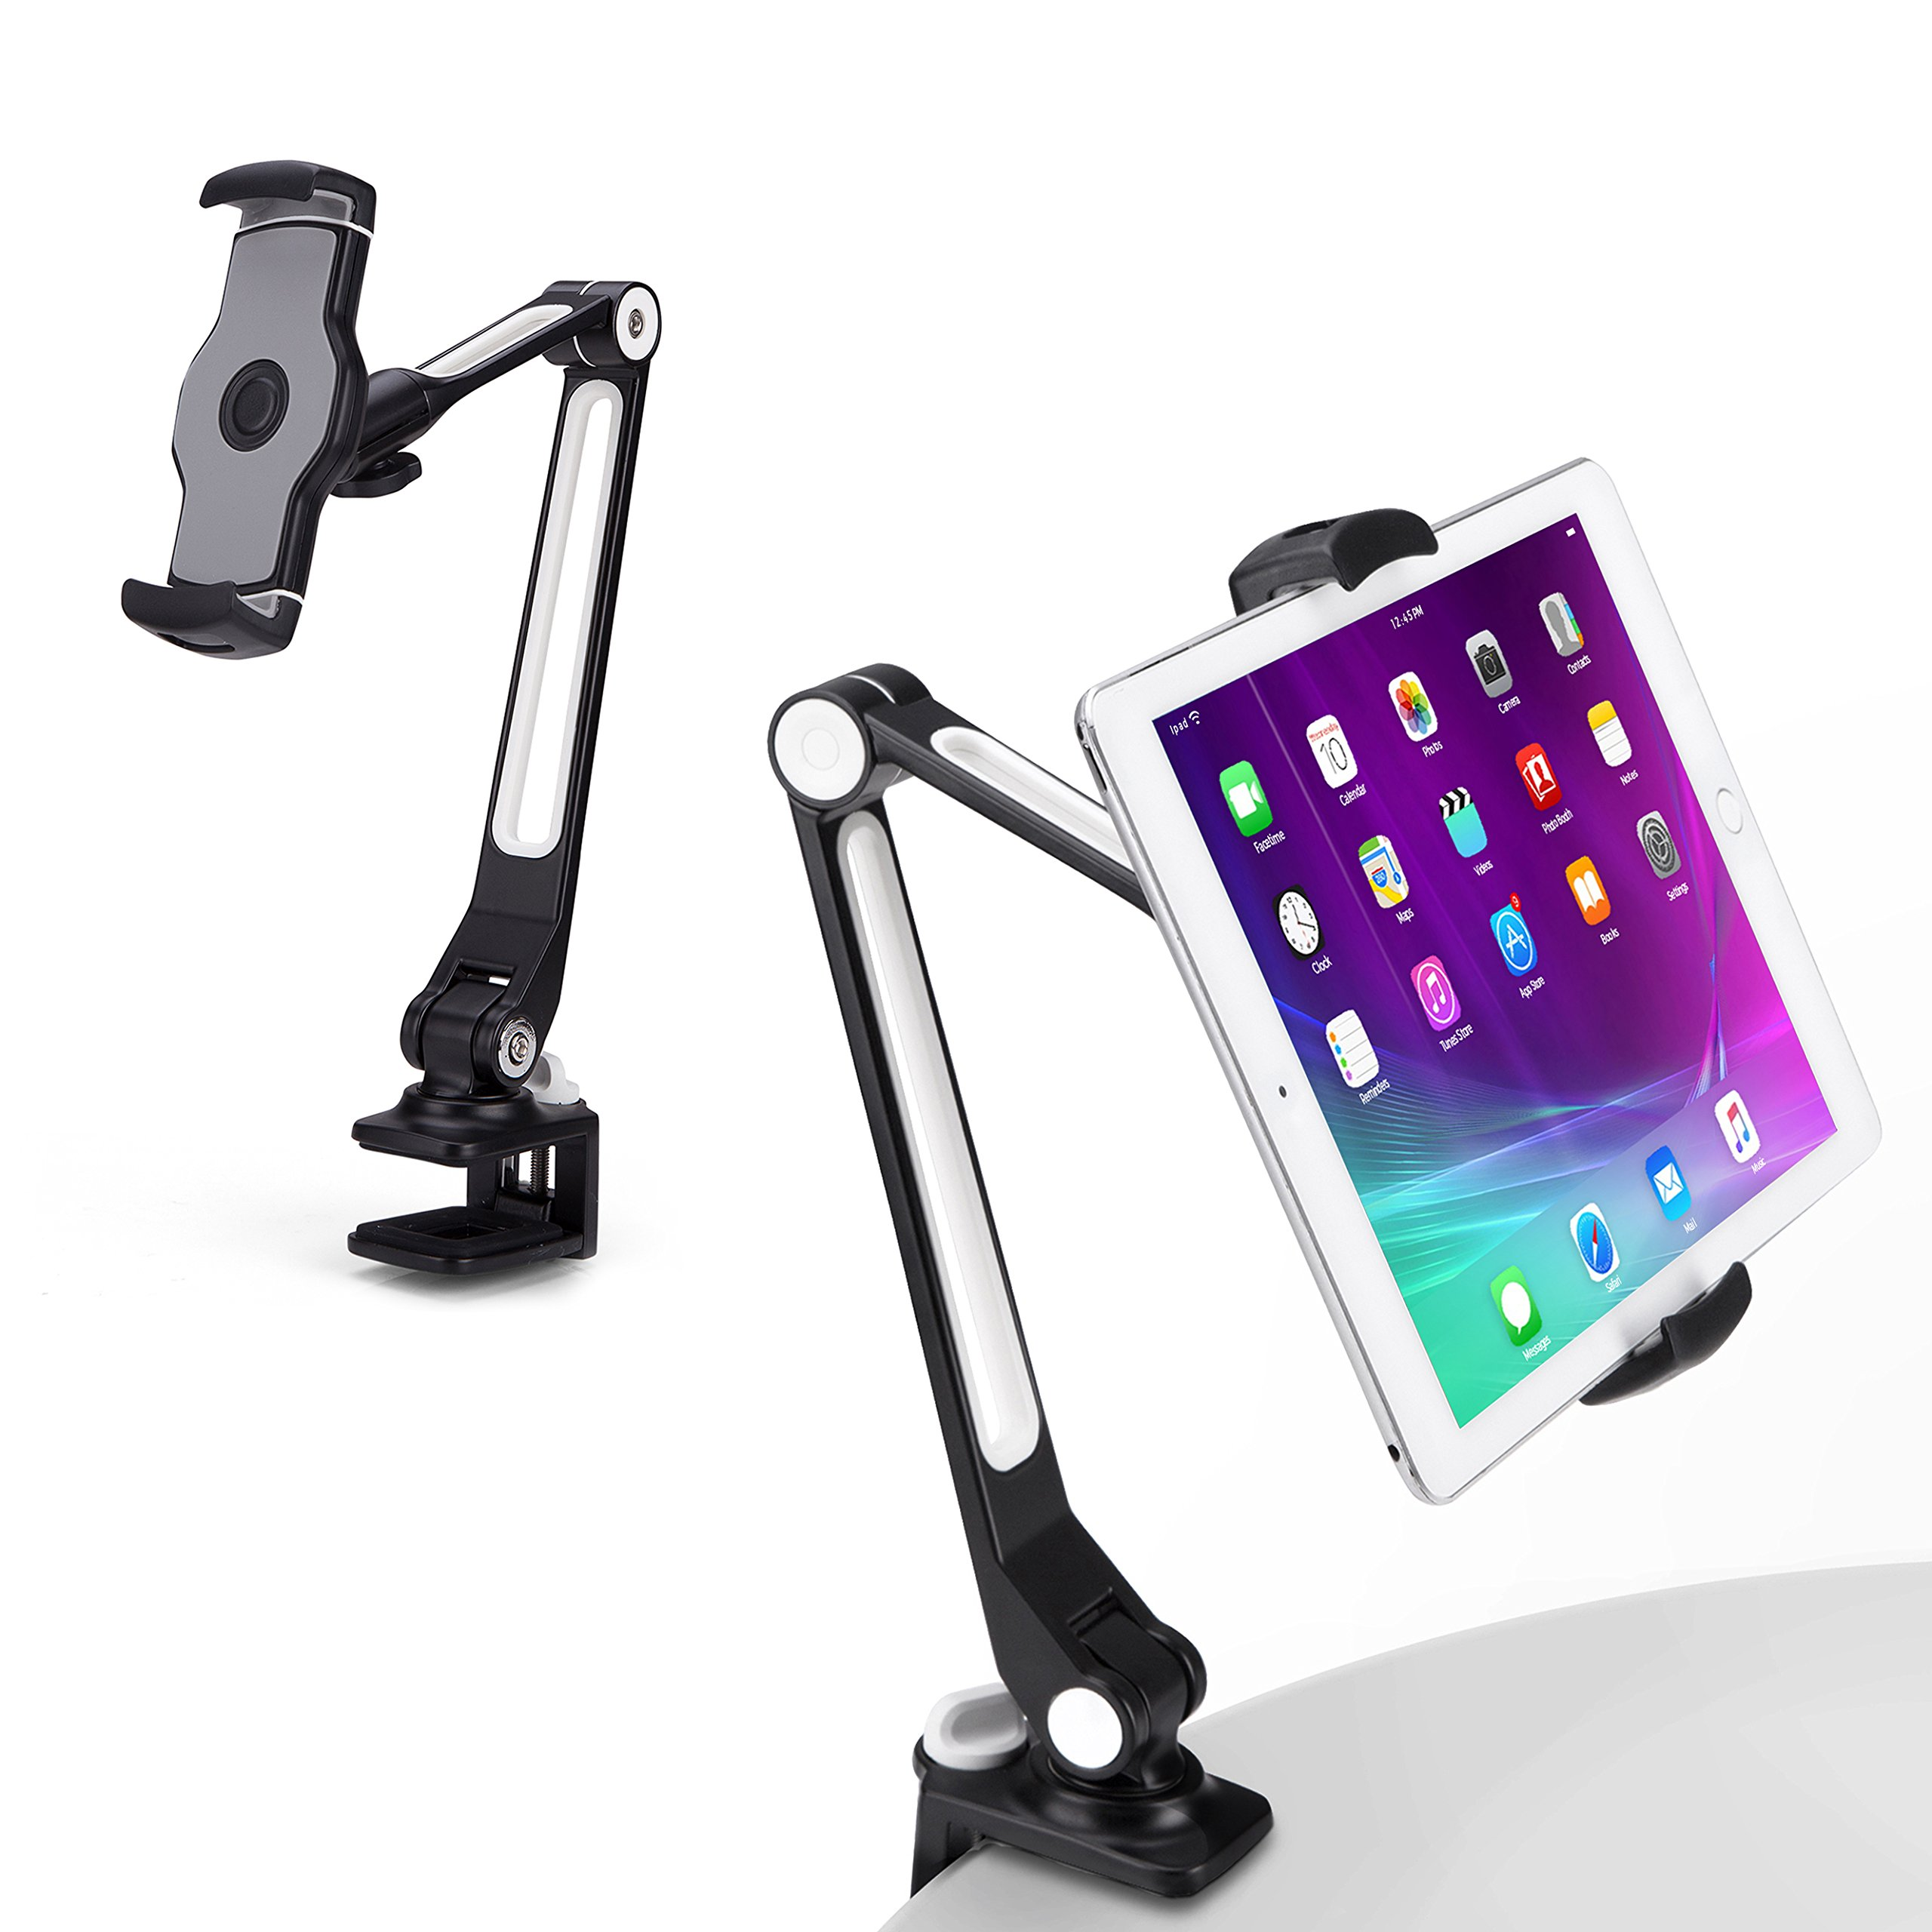 AboveTEK Sturdy iPad Holder, Aluminum Long Arm iPad Tablet Mount, 360° Swivel Tablet Stand & Phone Holder with Bracket Cradle Clamps 4-11'' Devices for Kitchen Bedside Office Desk Showcase Display